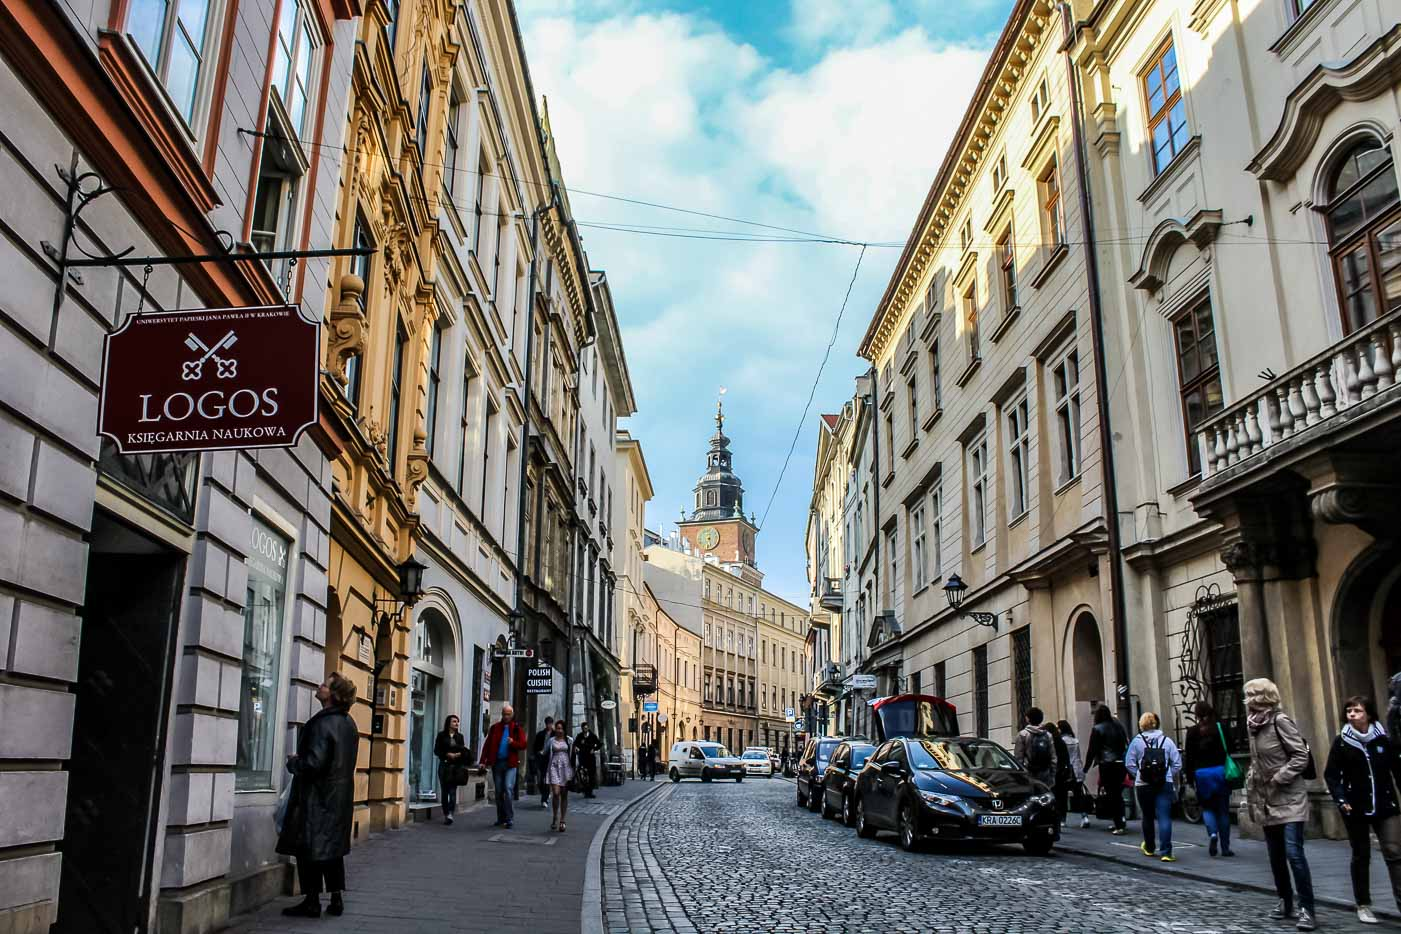 Self-guided walking tour of Old Town Krakow